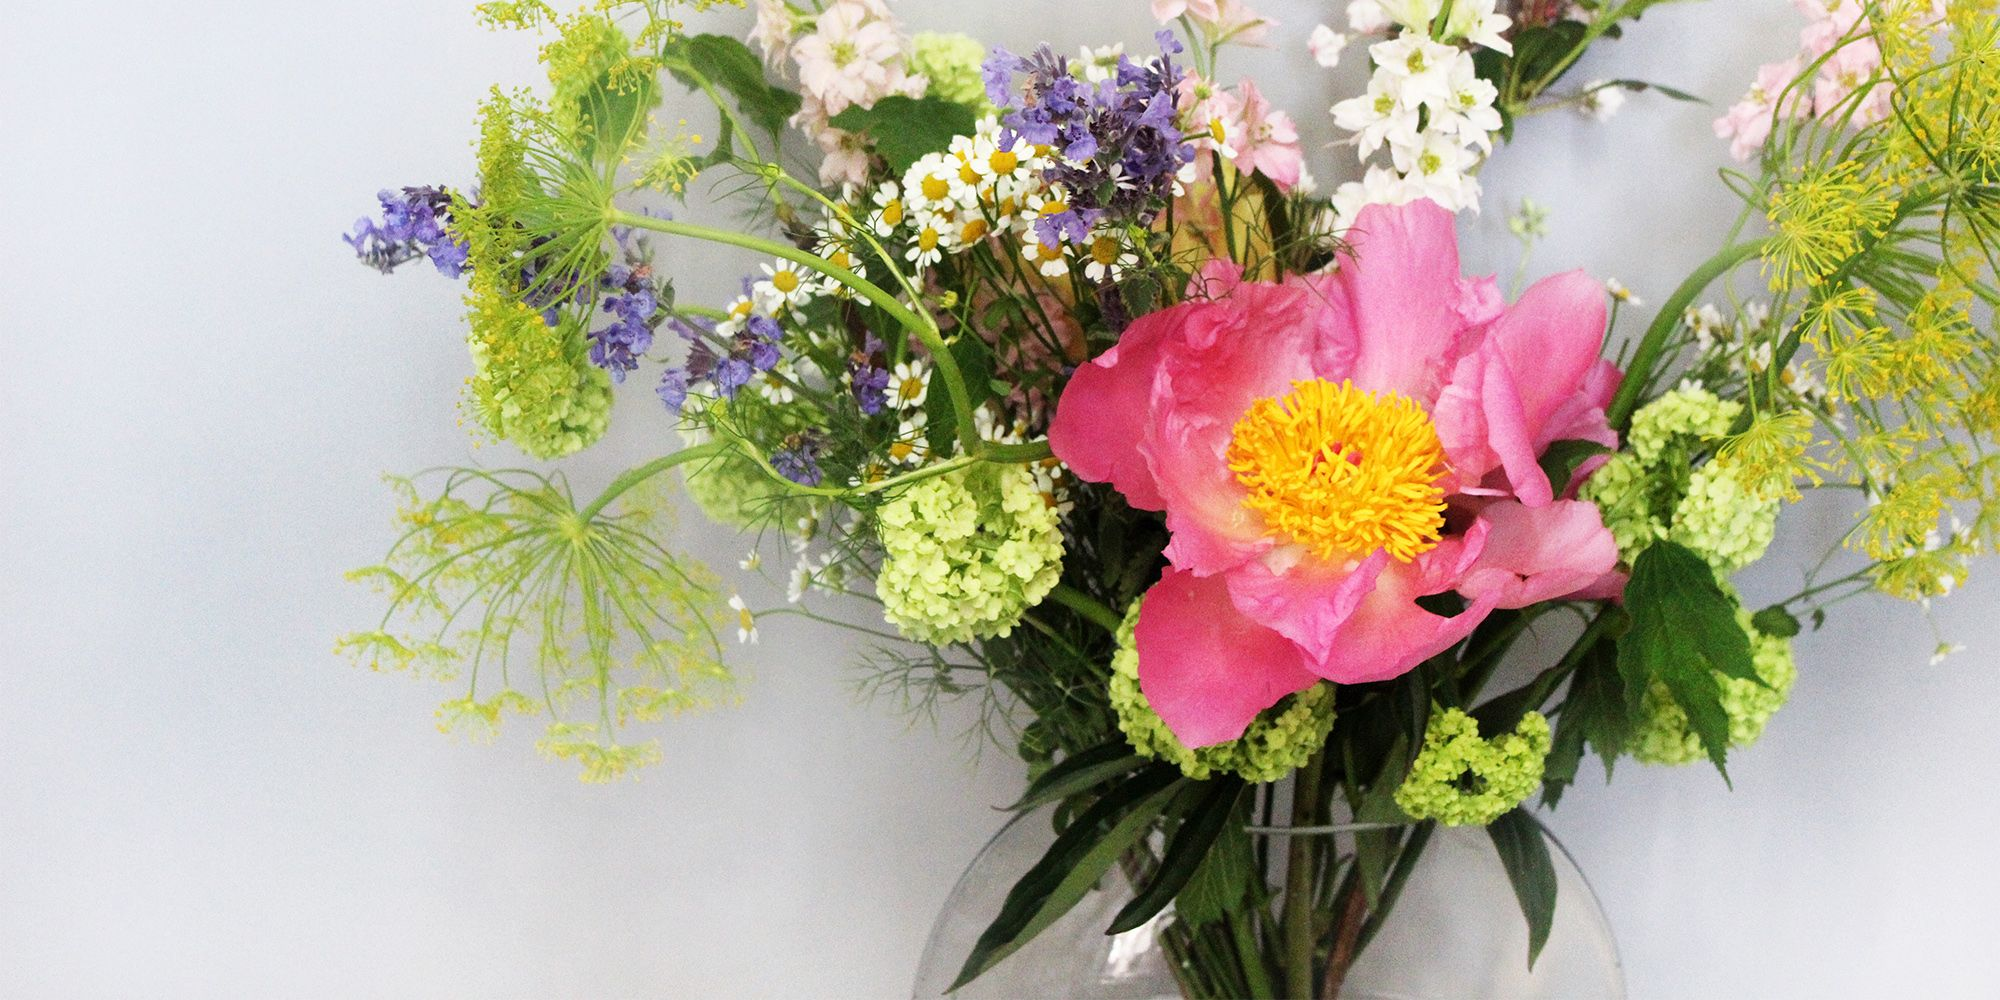 How To Arrange Flowers For The Most Stunning Homemade Bouquets